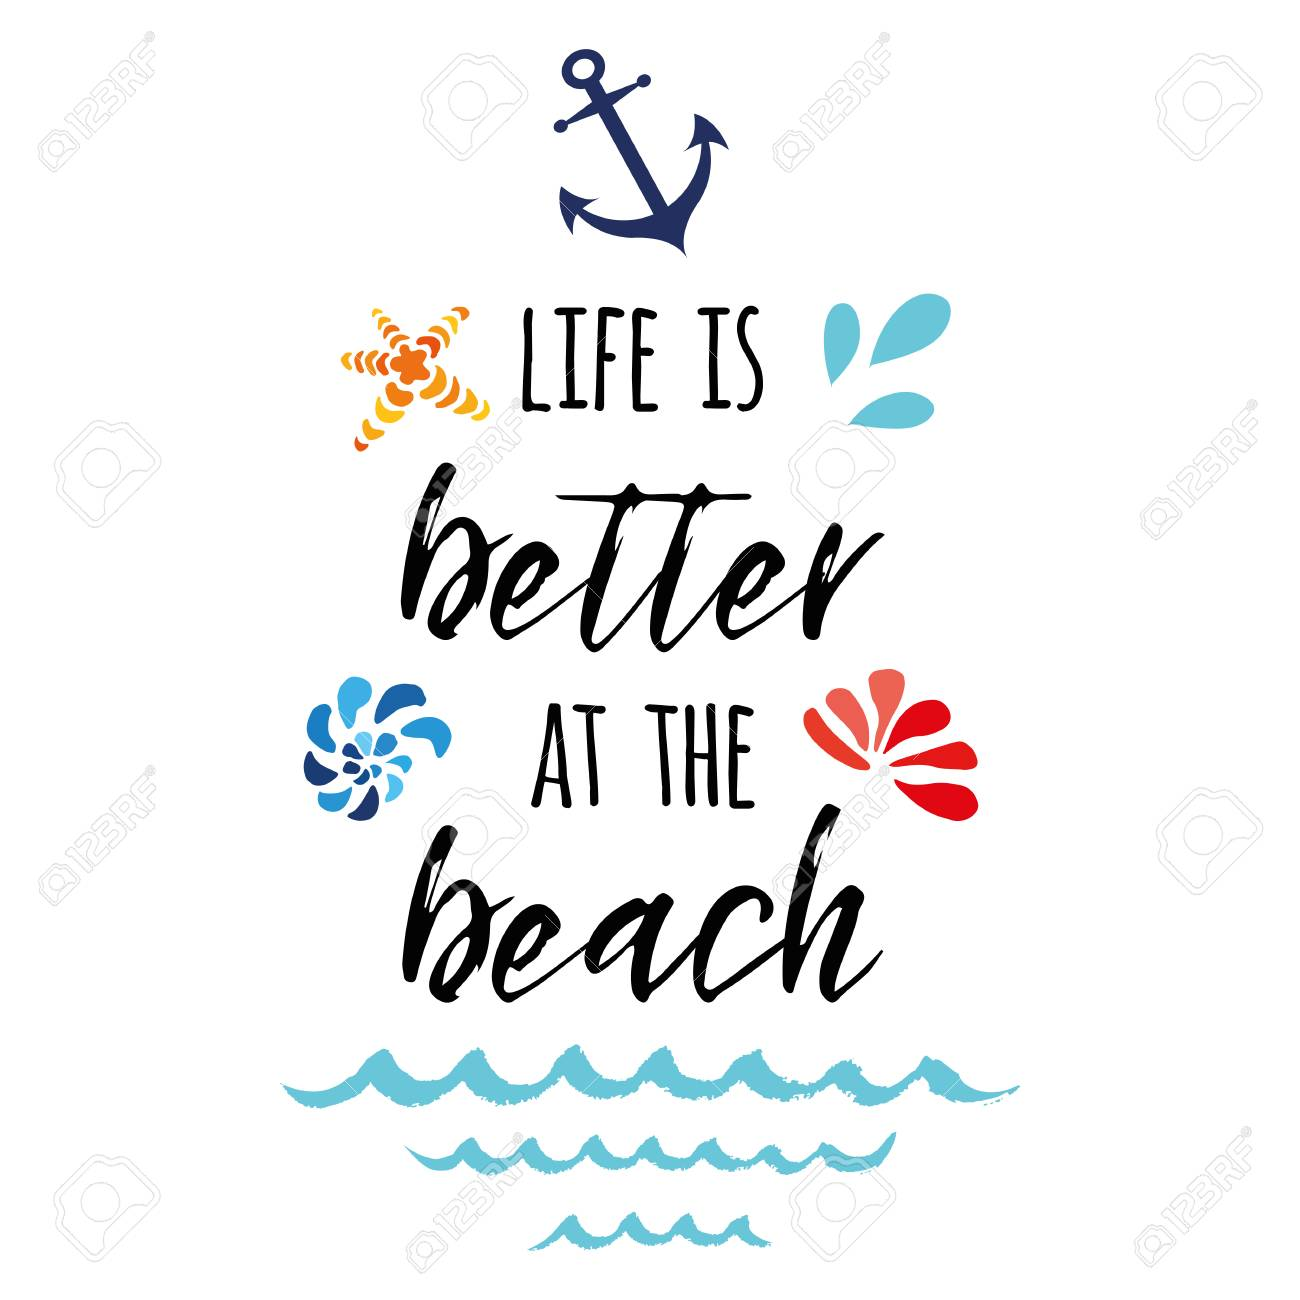 dee54d5648 Life is better at the beach. Vector inspirational vacation and travel quote  with anchor,